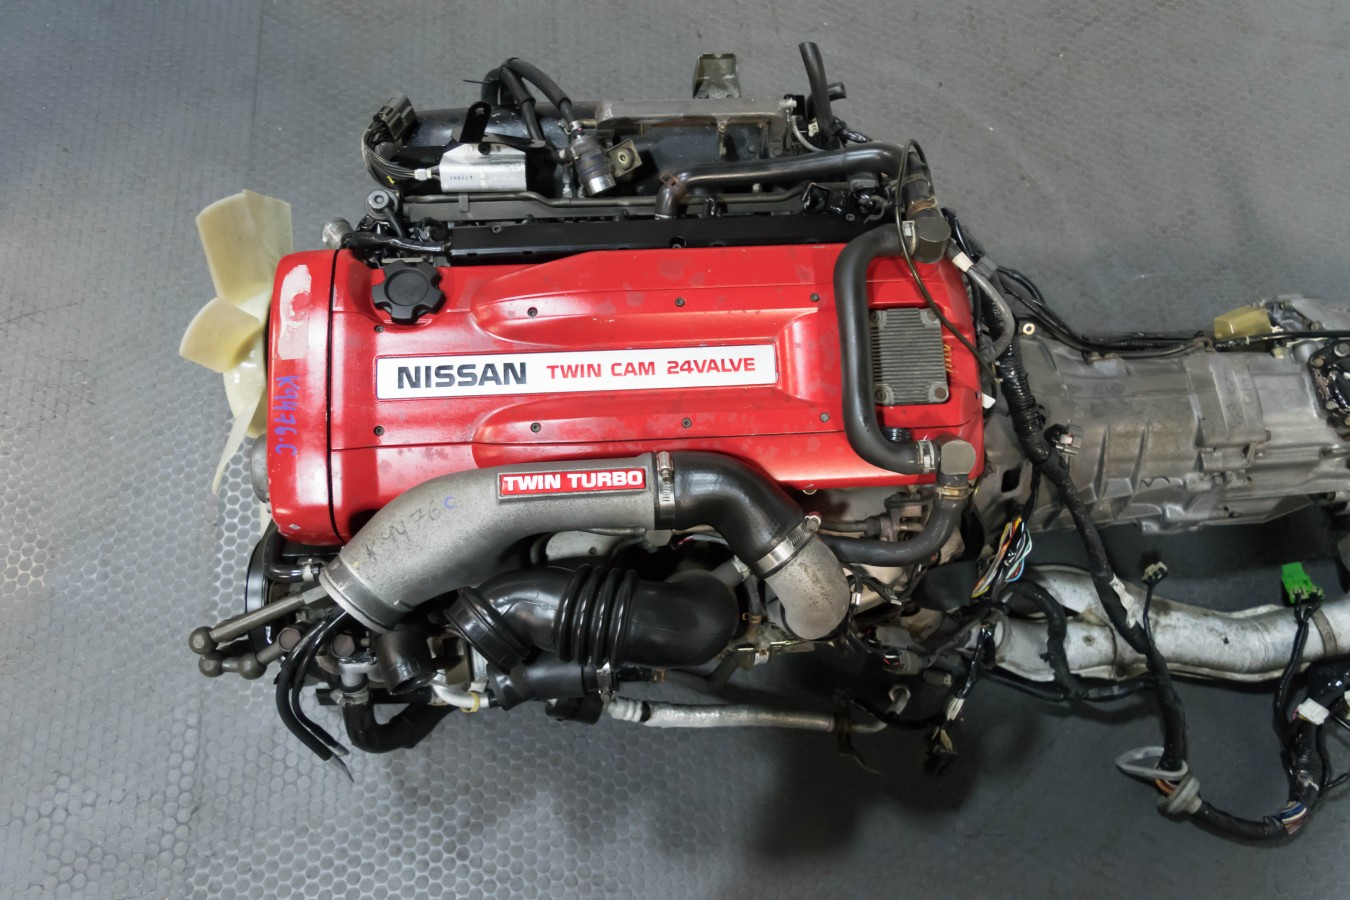 Used jdm Nissan RB26-DETT Engine, transmission with the harness, ecu and  jdm downpipe of a GTR r32 for sale